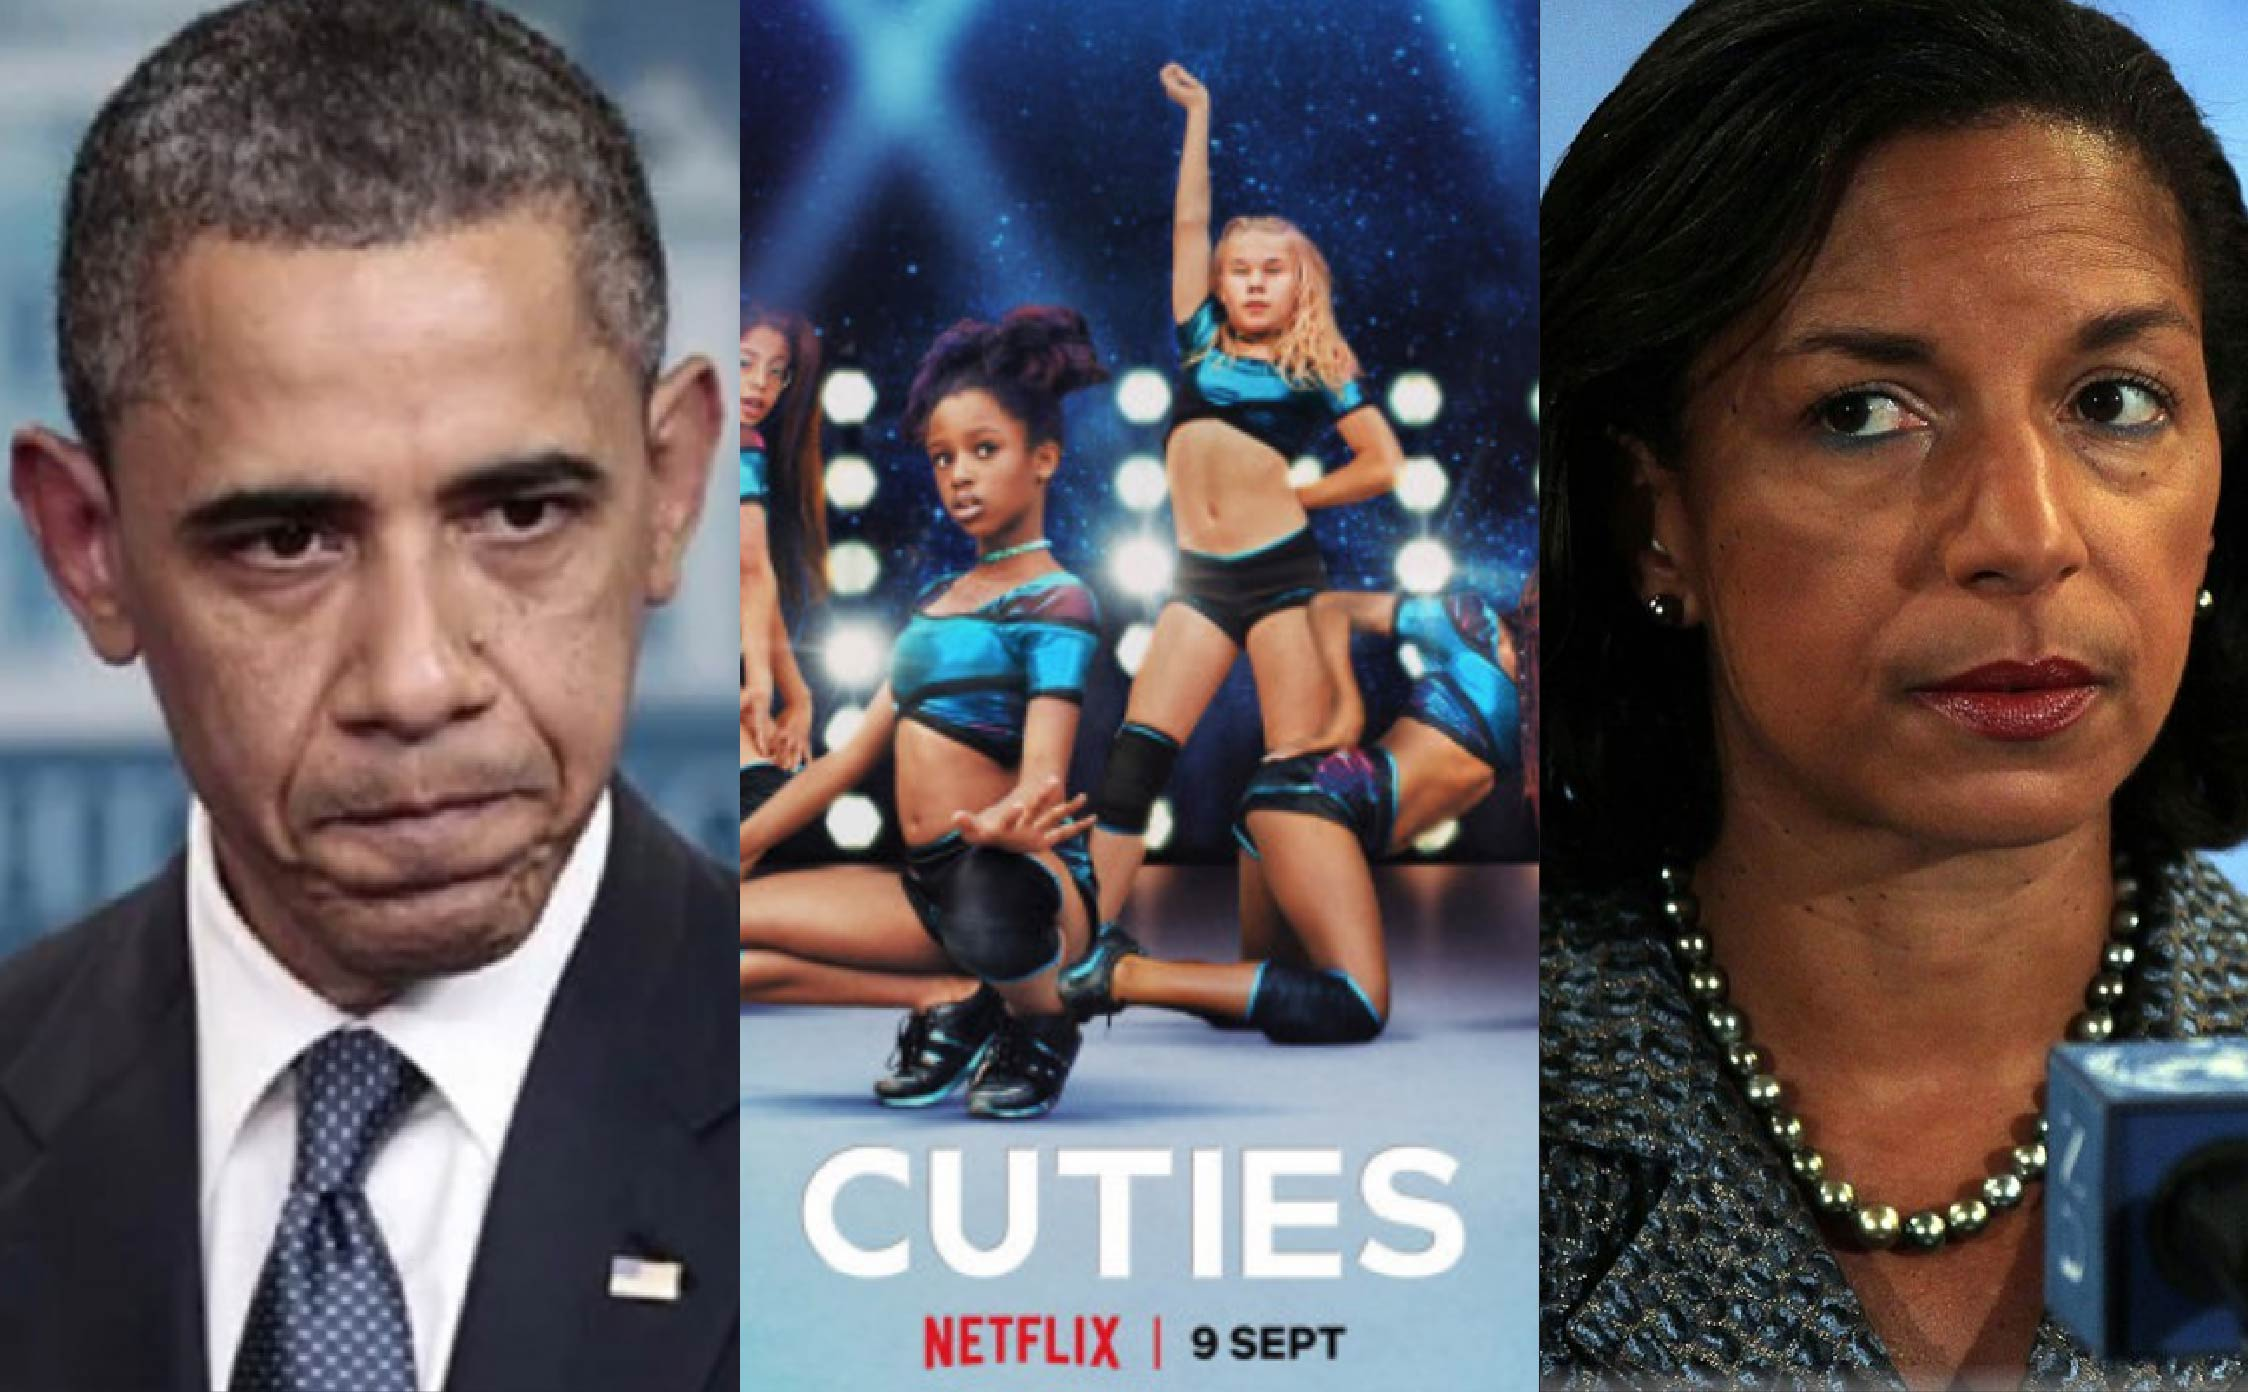 Obama's and Netflix Board Member Susan Rice Remain Silent on 'Cuties' Scandal